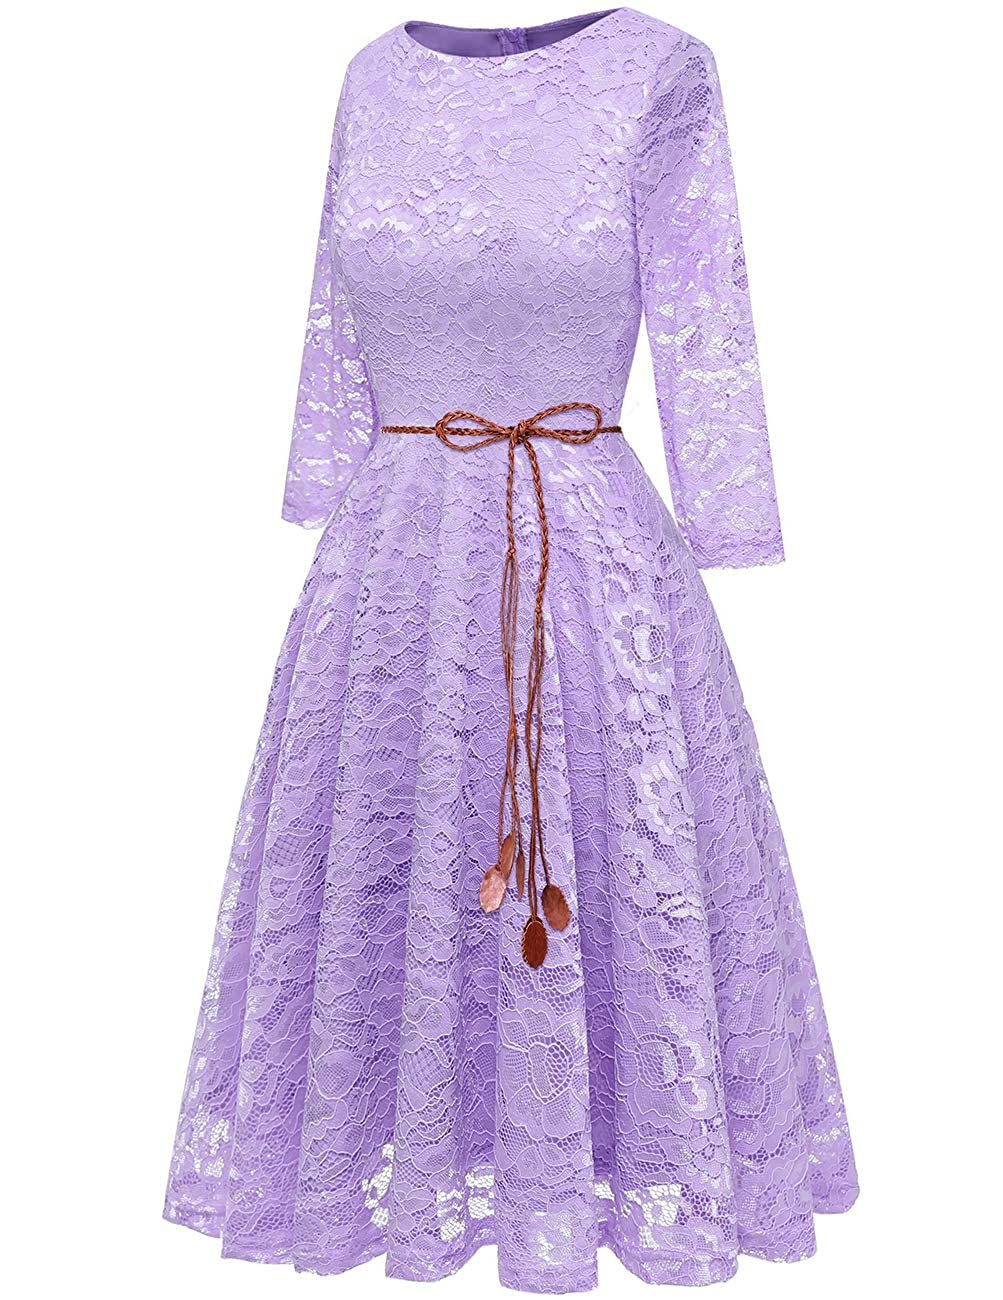 Bridesmay Womens Elegant 3//4 Sleeve Boatneck Floral Lace Swing Cocktail Party Bridesmaid Dress